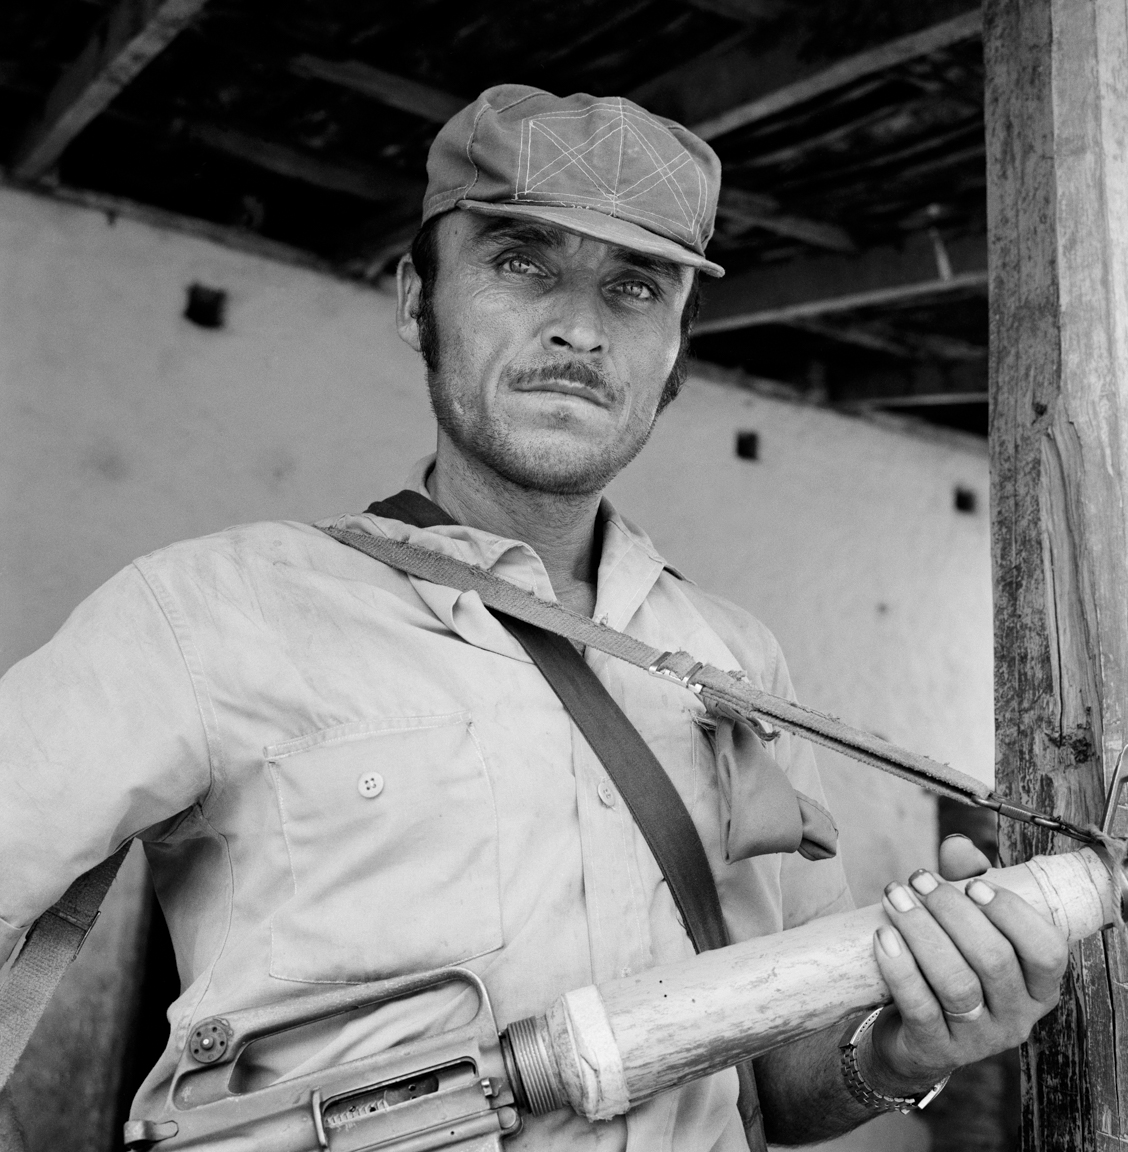 A portrait of a People's Liberation Forces (FPL) guerrilla fighter as he stands in front of a building May 10, 1983 occupied during an attack in Cinquera, El Salvador. At the time, El Salvador was engaged in what became a 13-year civil war between successive right-wing governments (backed by the US and others) and various armed guerrilla factions that eventually claimed over 75,000 lives before ending in 1992.